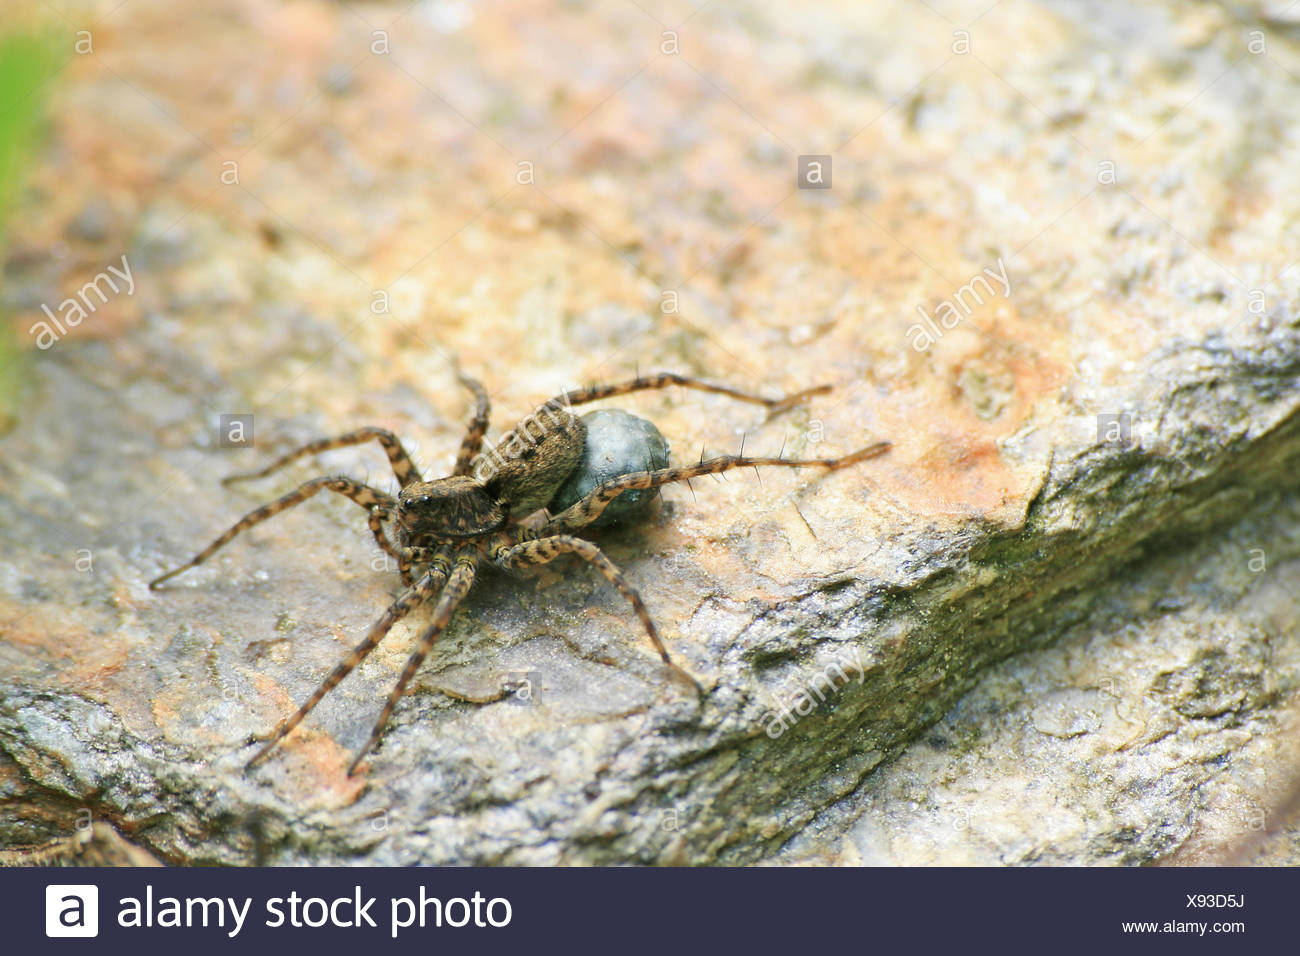 animal, insect, spider, macro, close-up, macro admission, close up view, - Stock Image